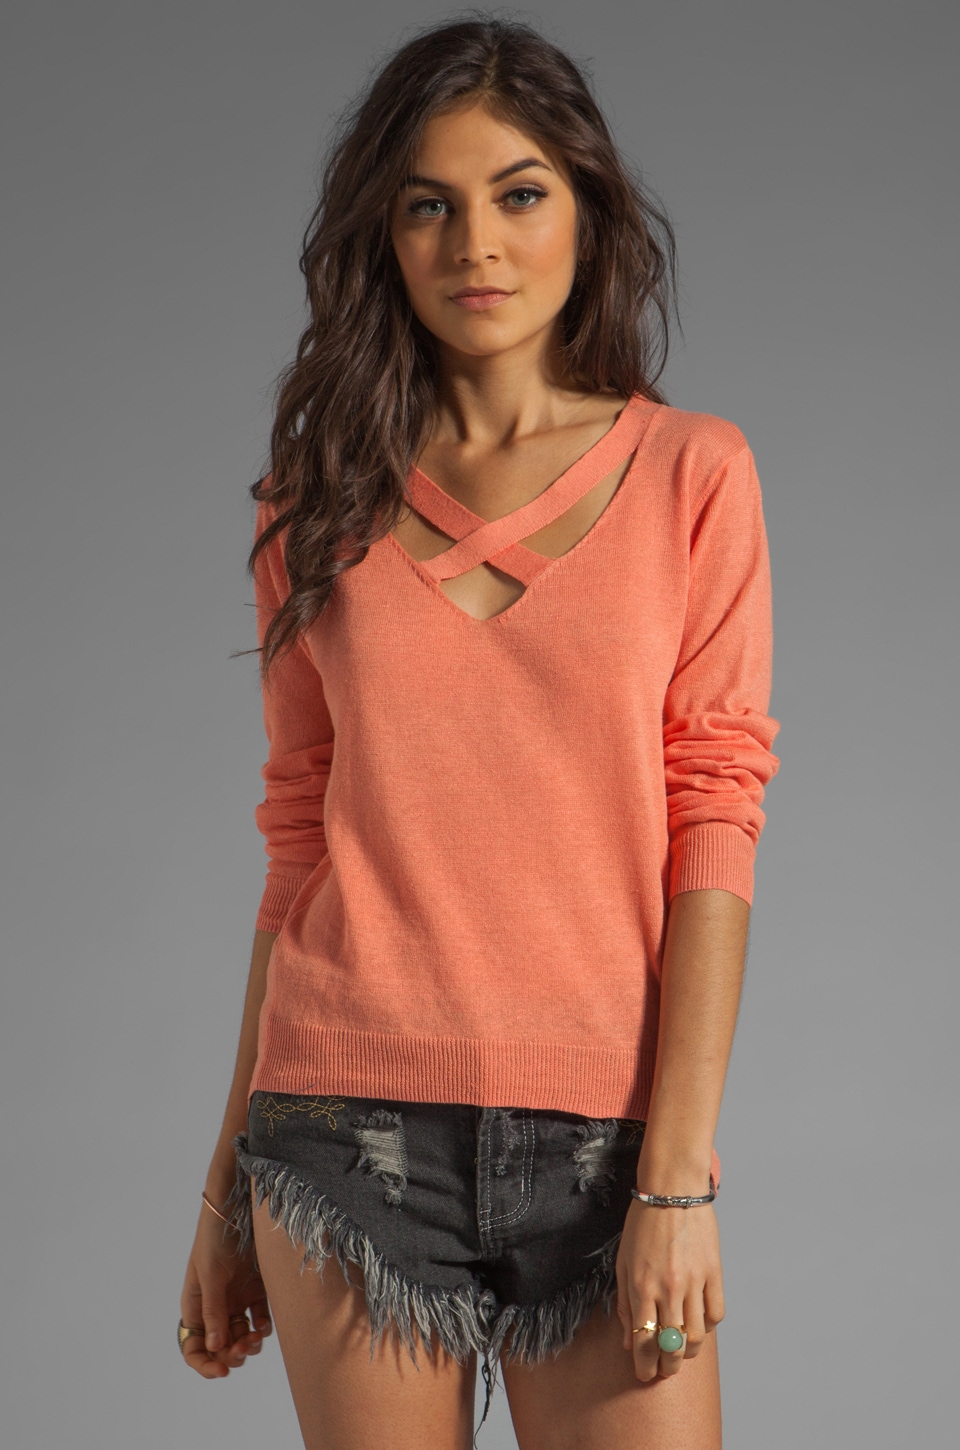 Funktional Media Sweater in Media Coral